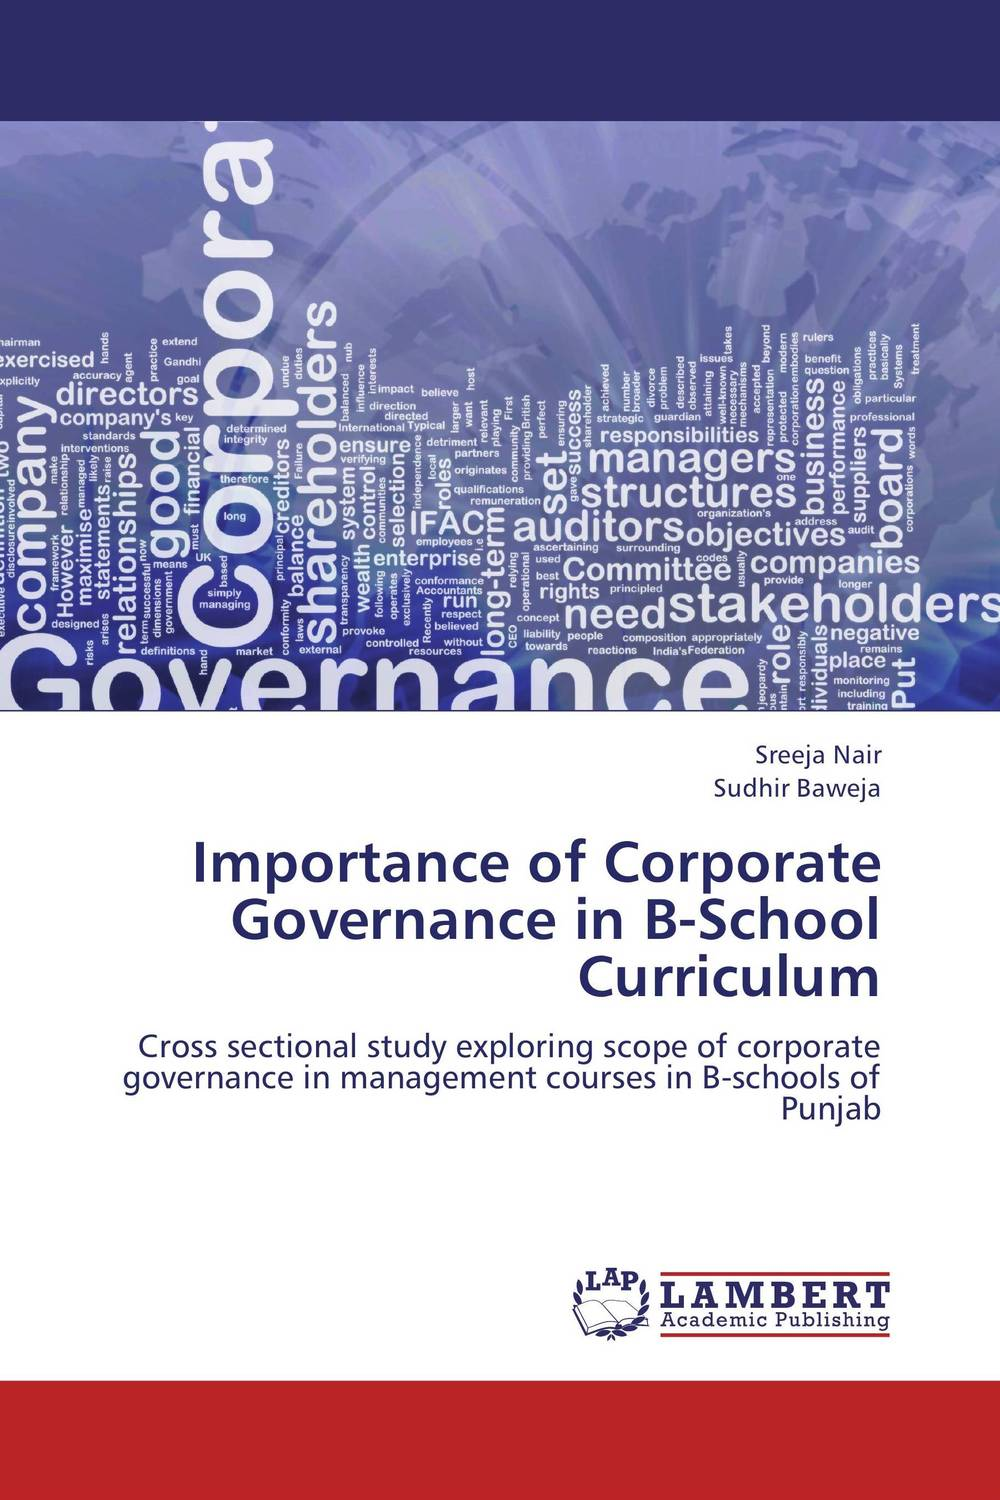 Importance of Corporate Governance in B-School Curriculum dysfunctions in accounting and the role of corporate lobbying